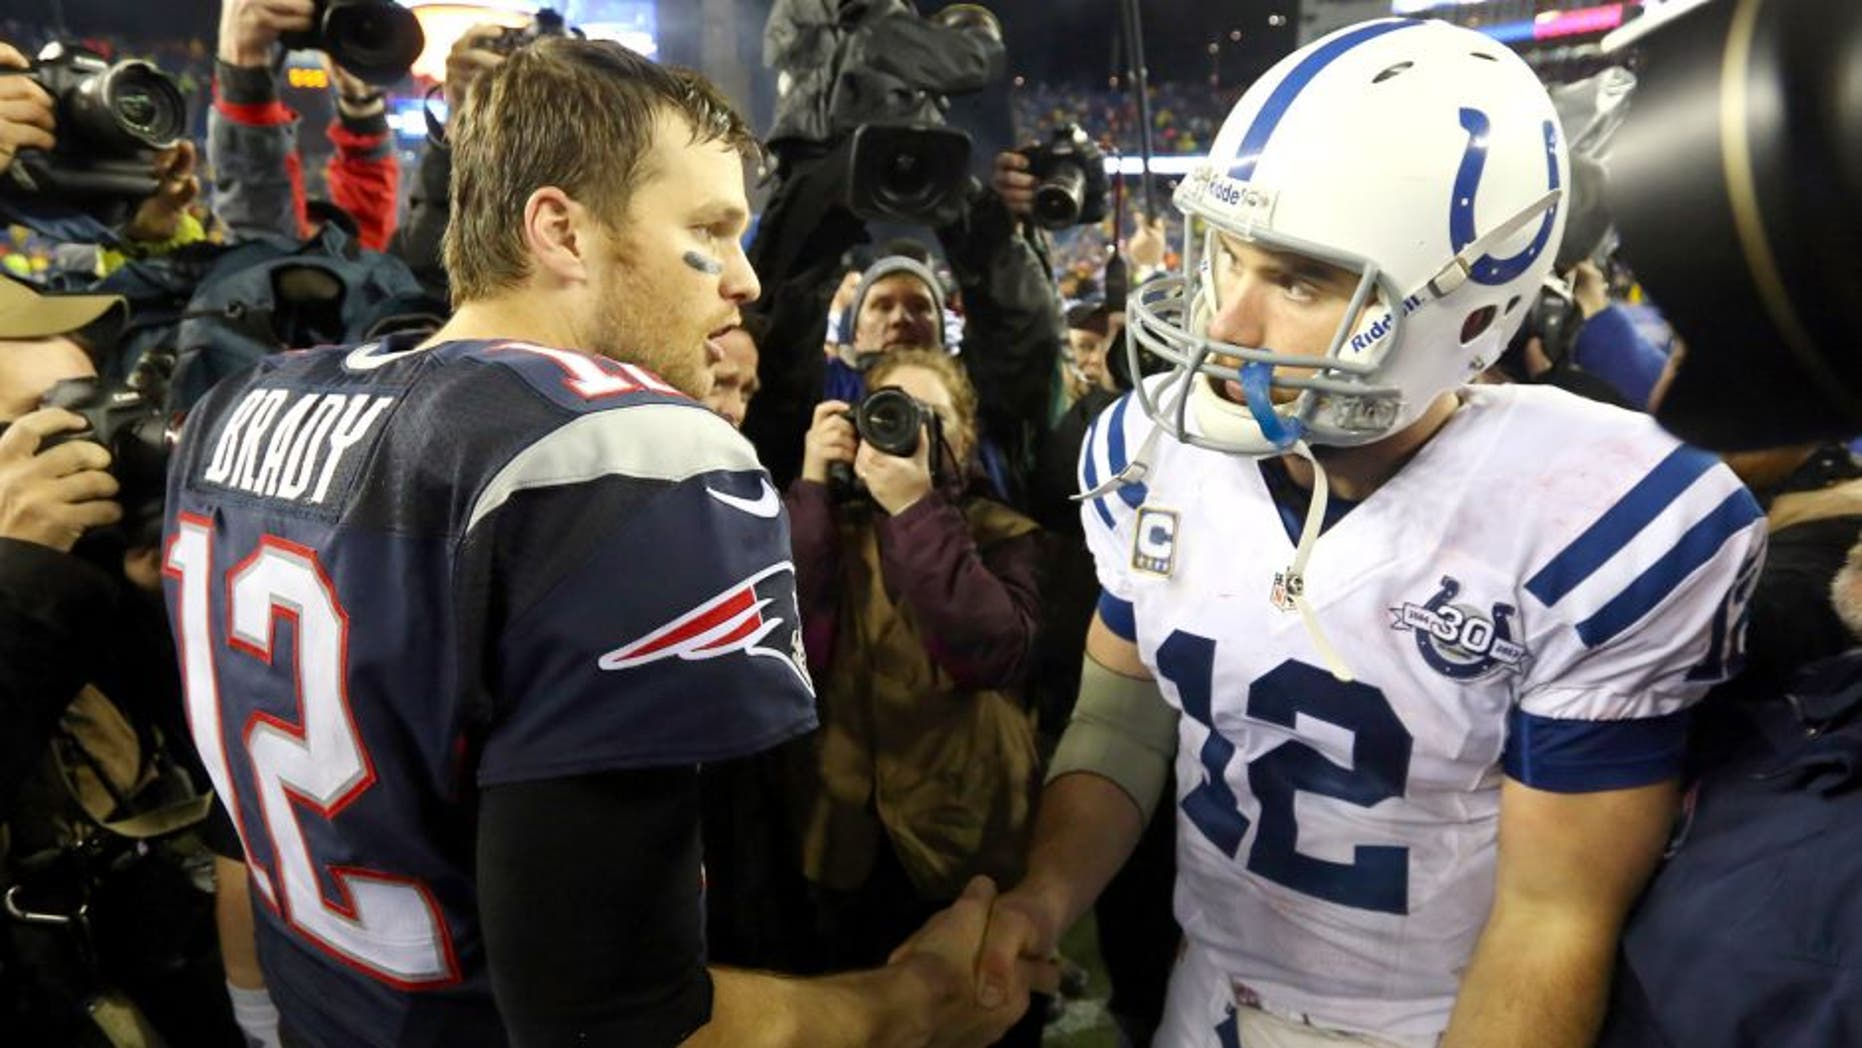 FOXBORO, MA - JANUARY 11: (L-R) Tom Brady #12 of the New England Patriots shakes hands with Andrew Luck #12 of the Indianapolis Colts after their AFC Divisional Playoff game at Gillette Stadium on January 11, 2014 in Foxboro, Massachusetts. The New England Patriots defeated the Indianapolis Colts 43 to 22. (Photo by Al Bello/Getty Images)